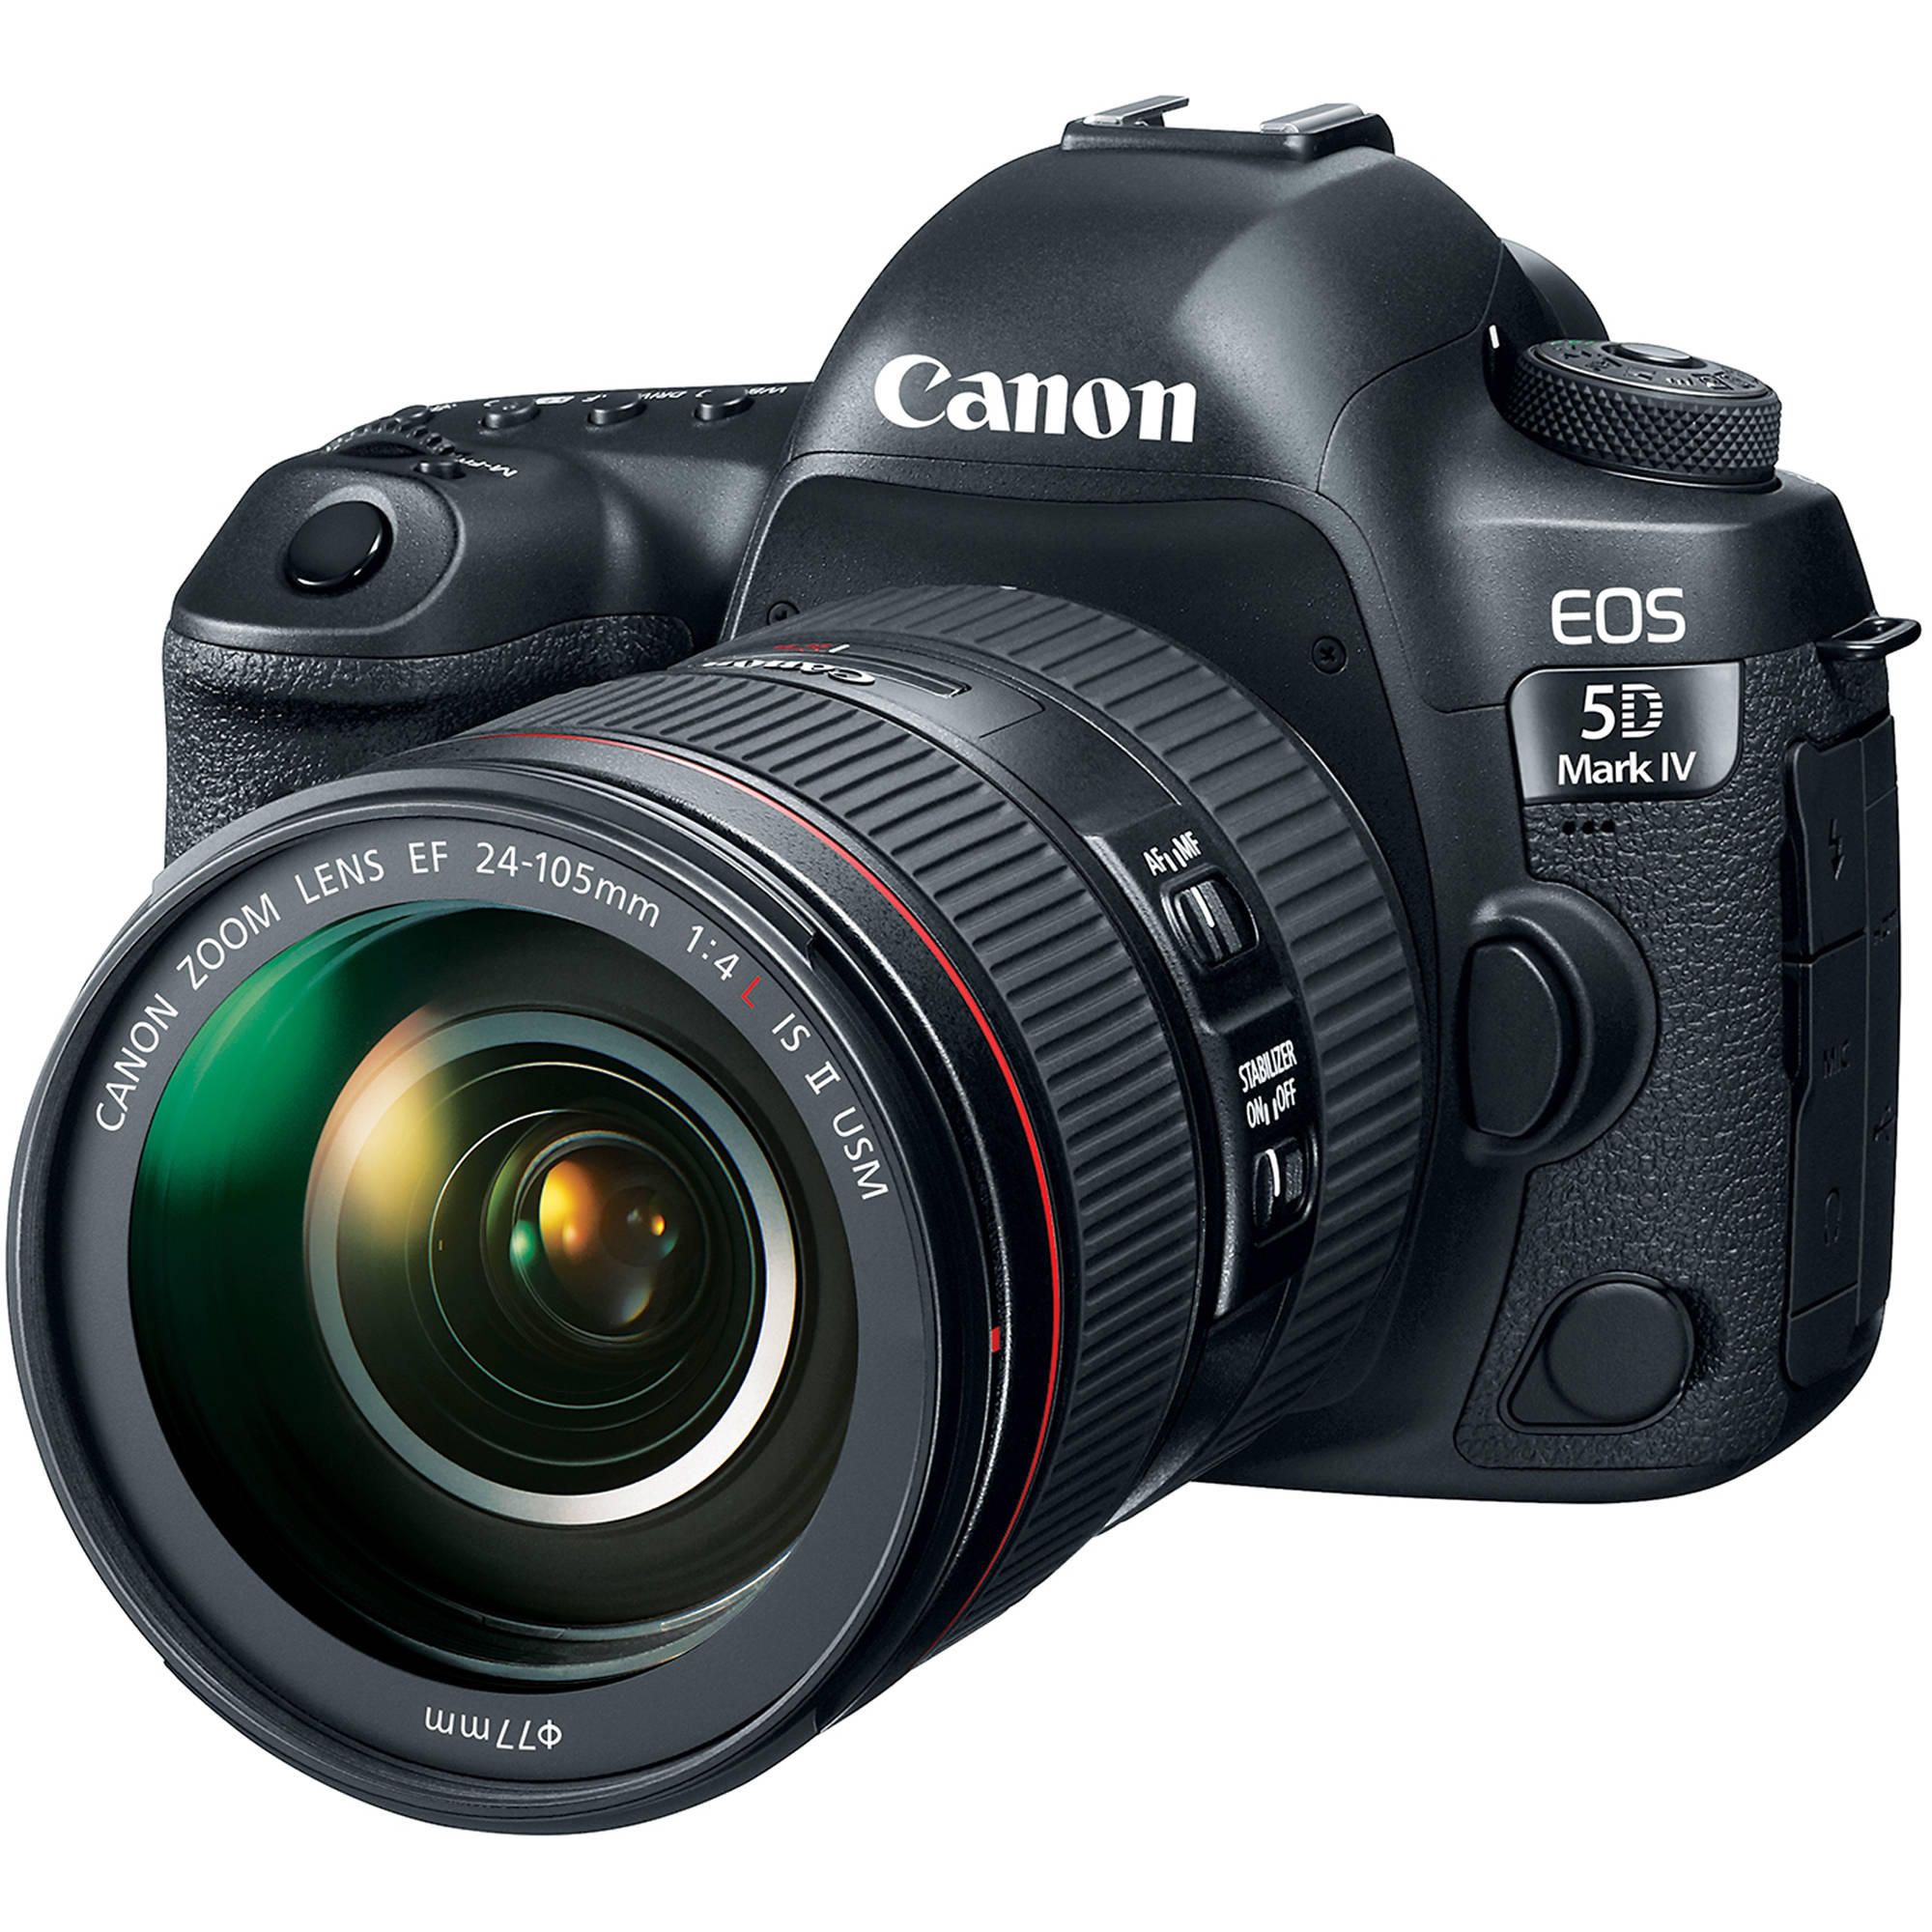 Canon EOS 5D Mark IV DSLR Camera with 24-105mm f/4L II 1483C010